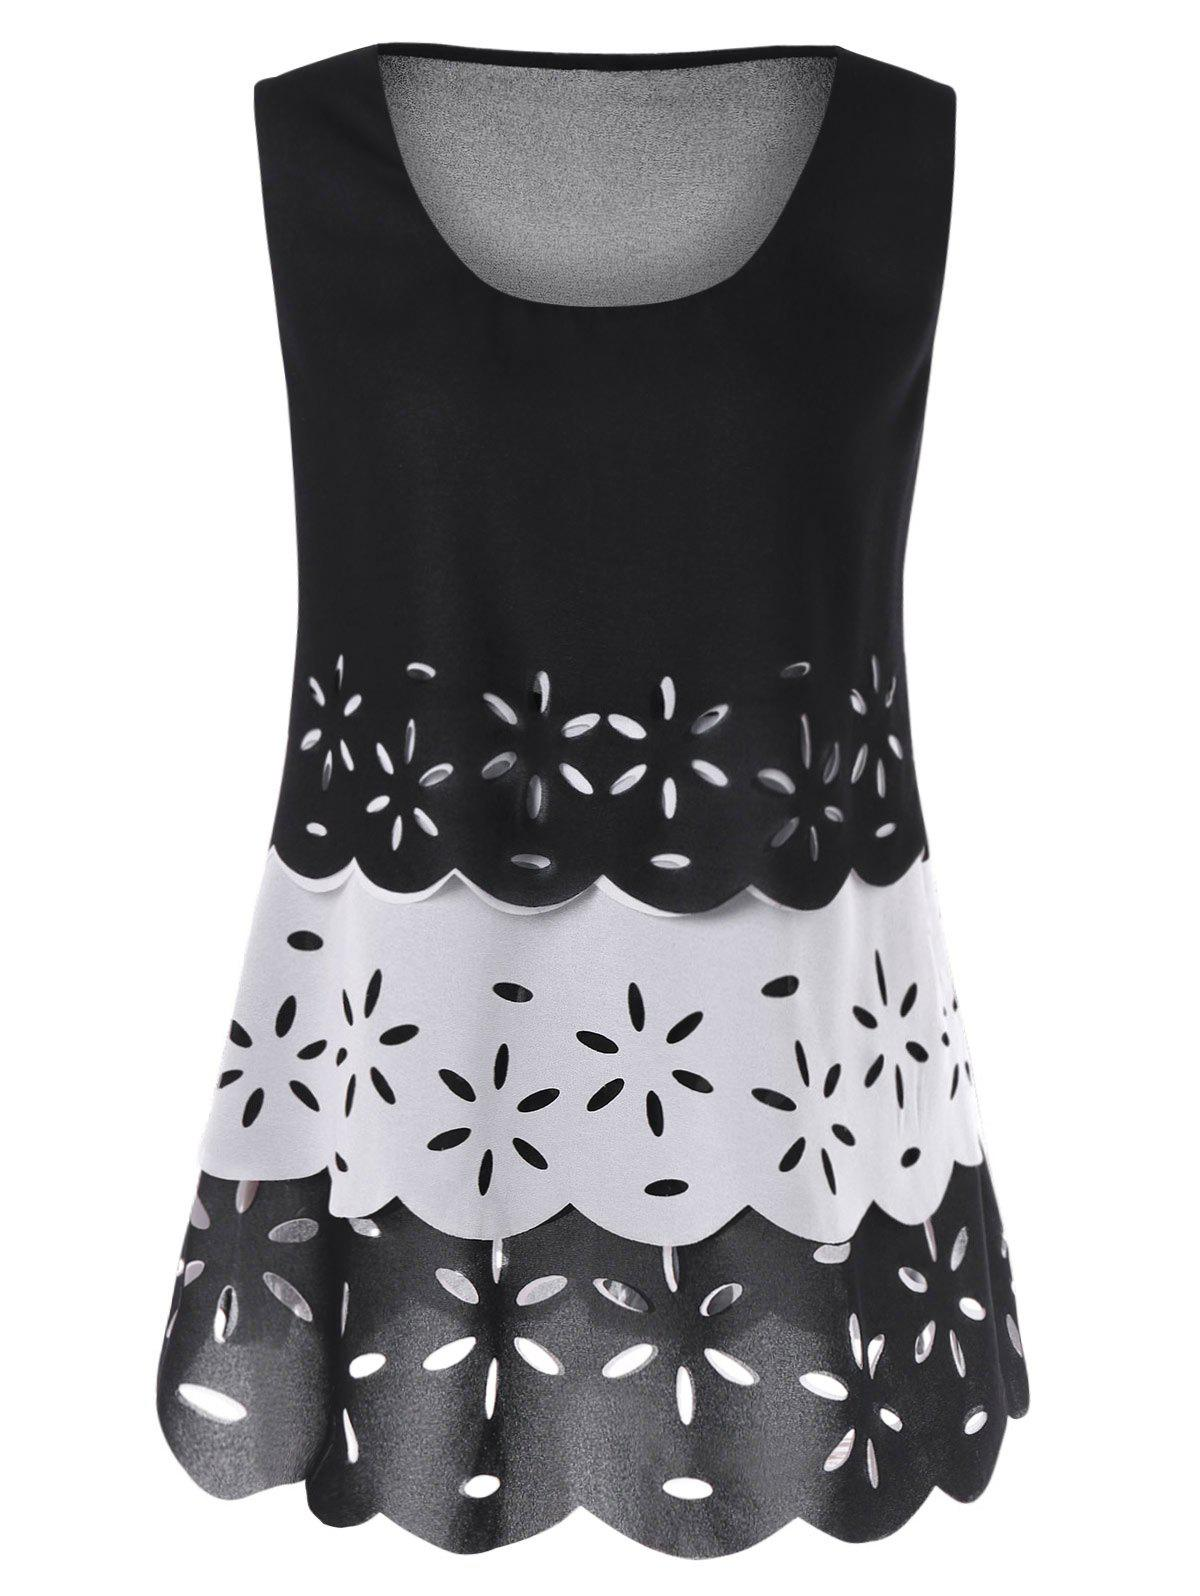 Floral Cut Out Trapeze Tank Top cut out lace floral tank top